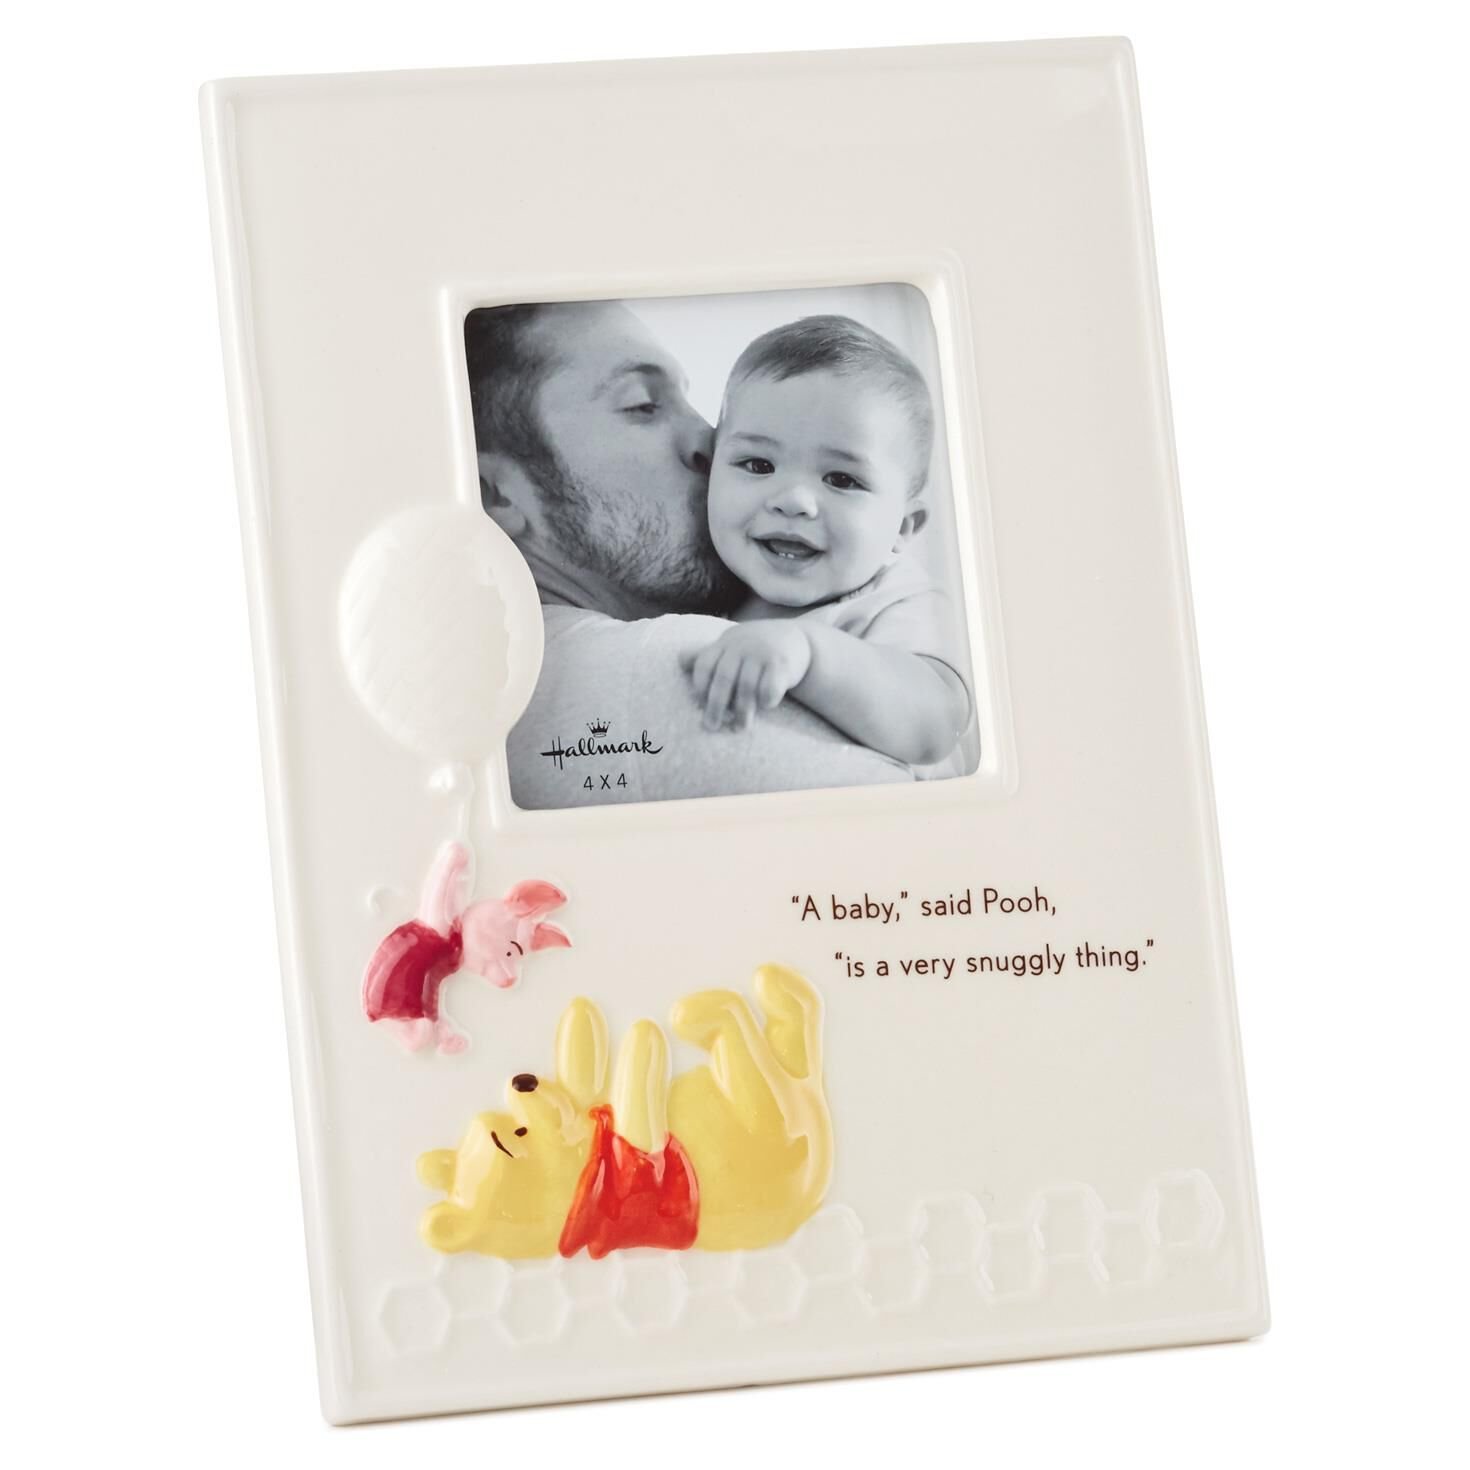 Winnie the pooh baby ceramic square picture frame 4x4 picture winnie the pooh baby ceramic square picture frame 4x4 picture frames hallmark jeuxipadfo Choice Image